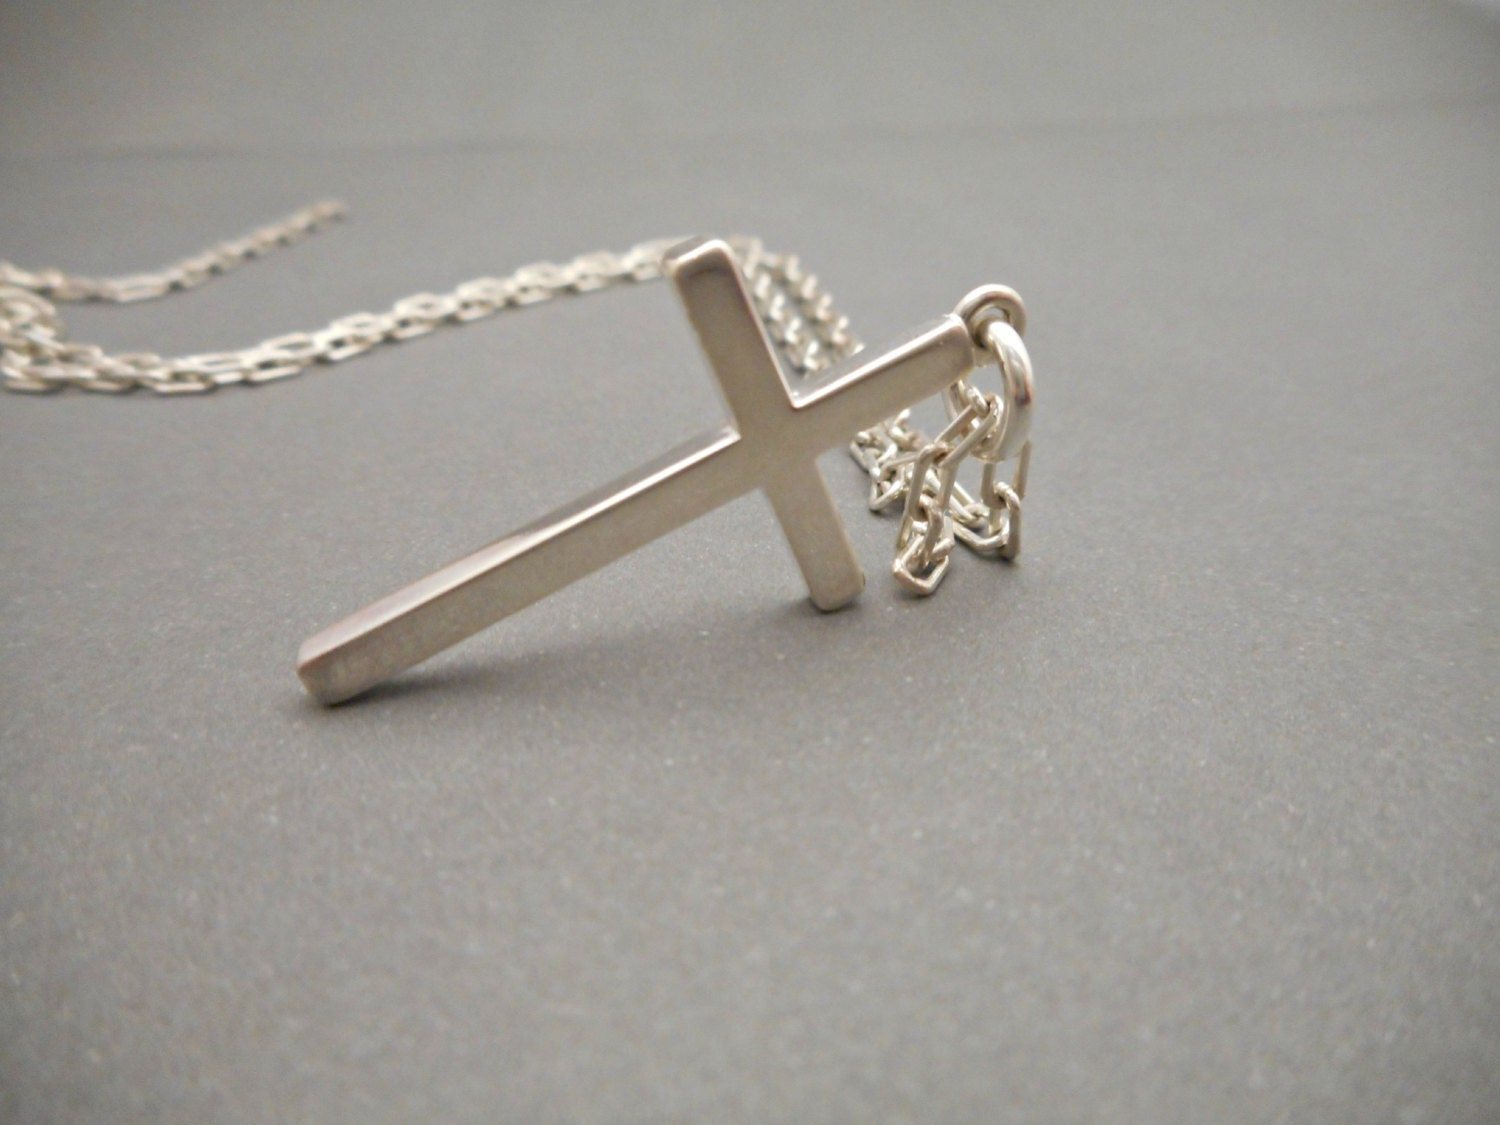 mens cross necklace silver cross jewelry cross necklace. Black Bedroom Furniture Sets. Home Design Ideas